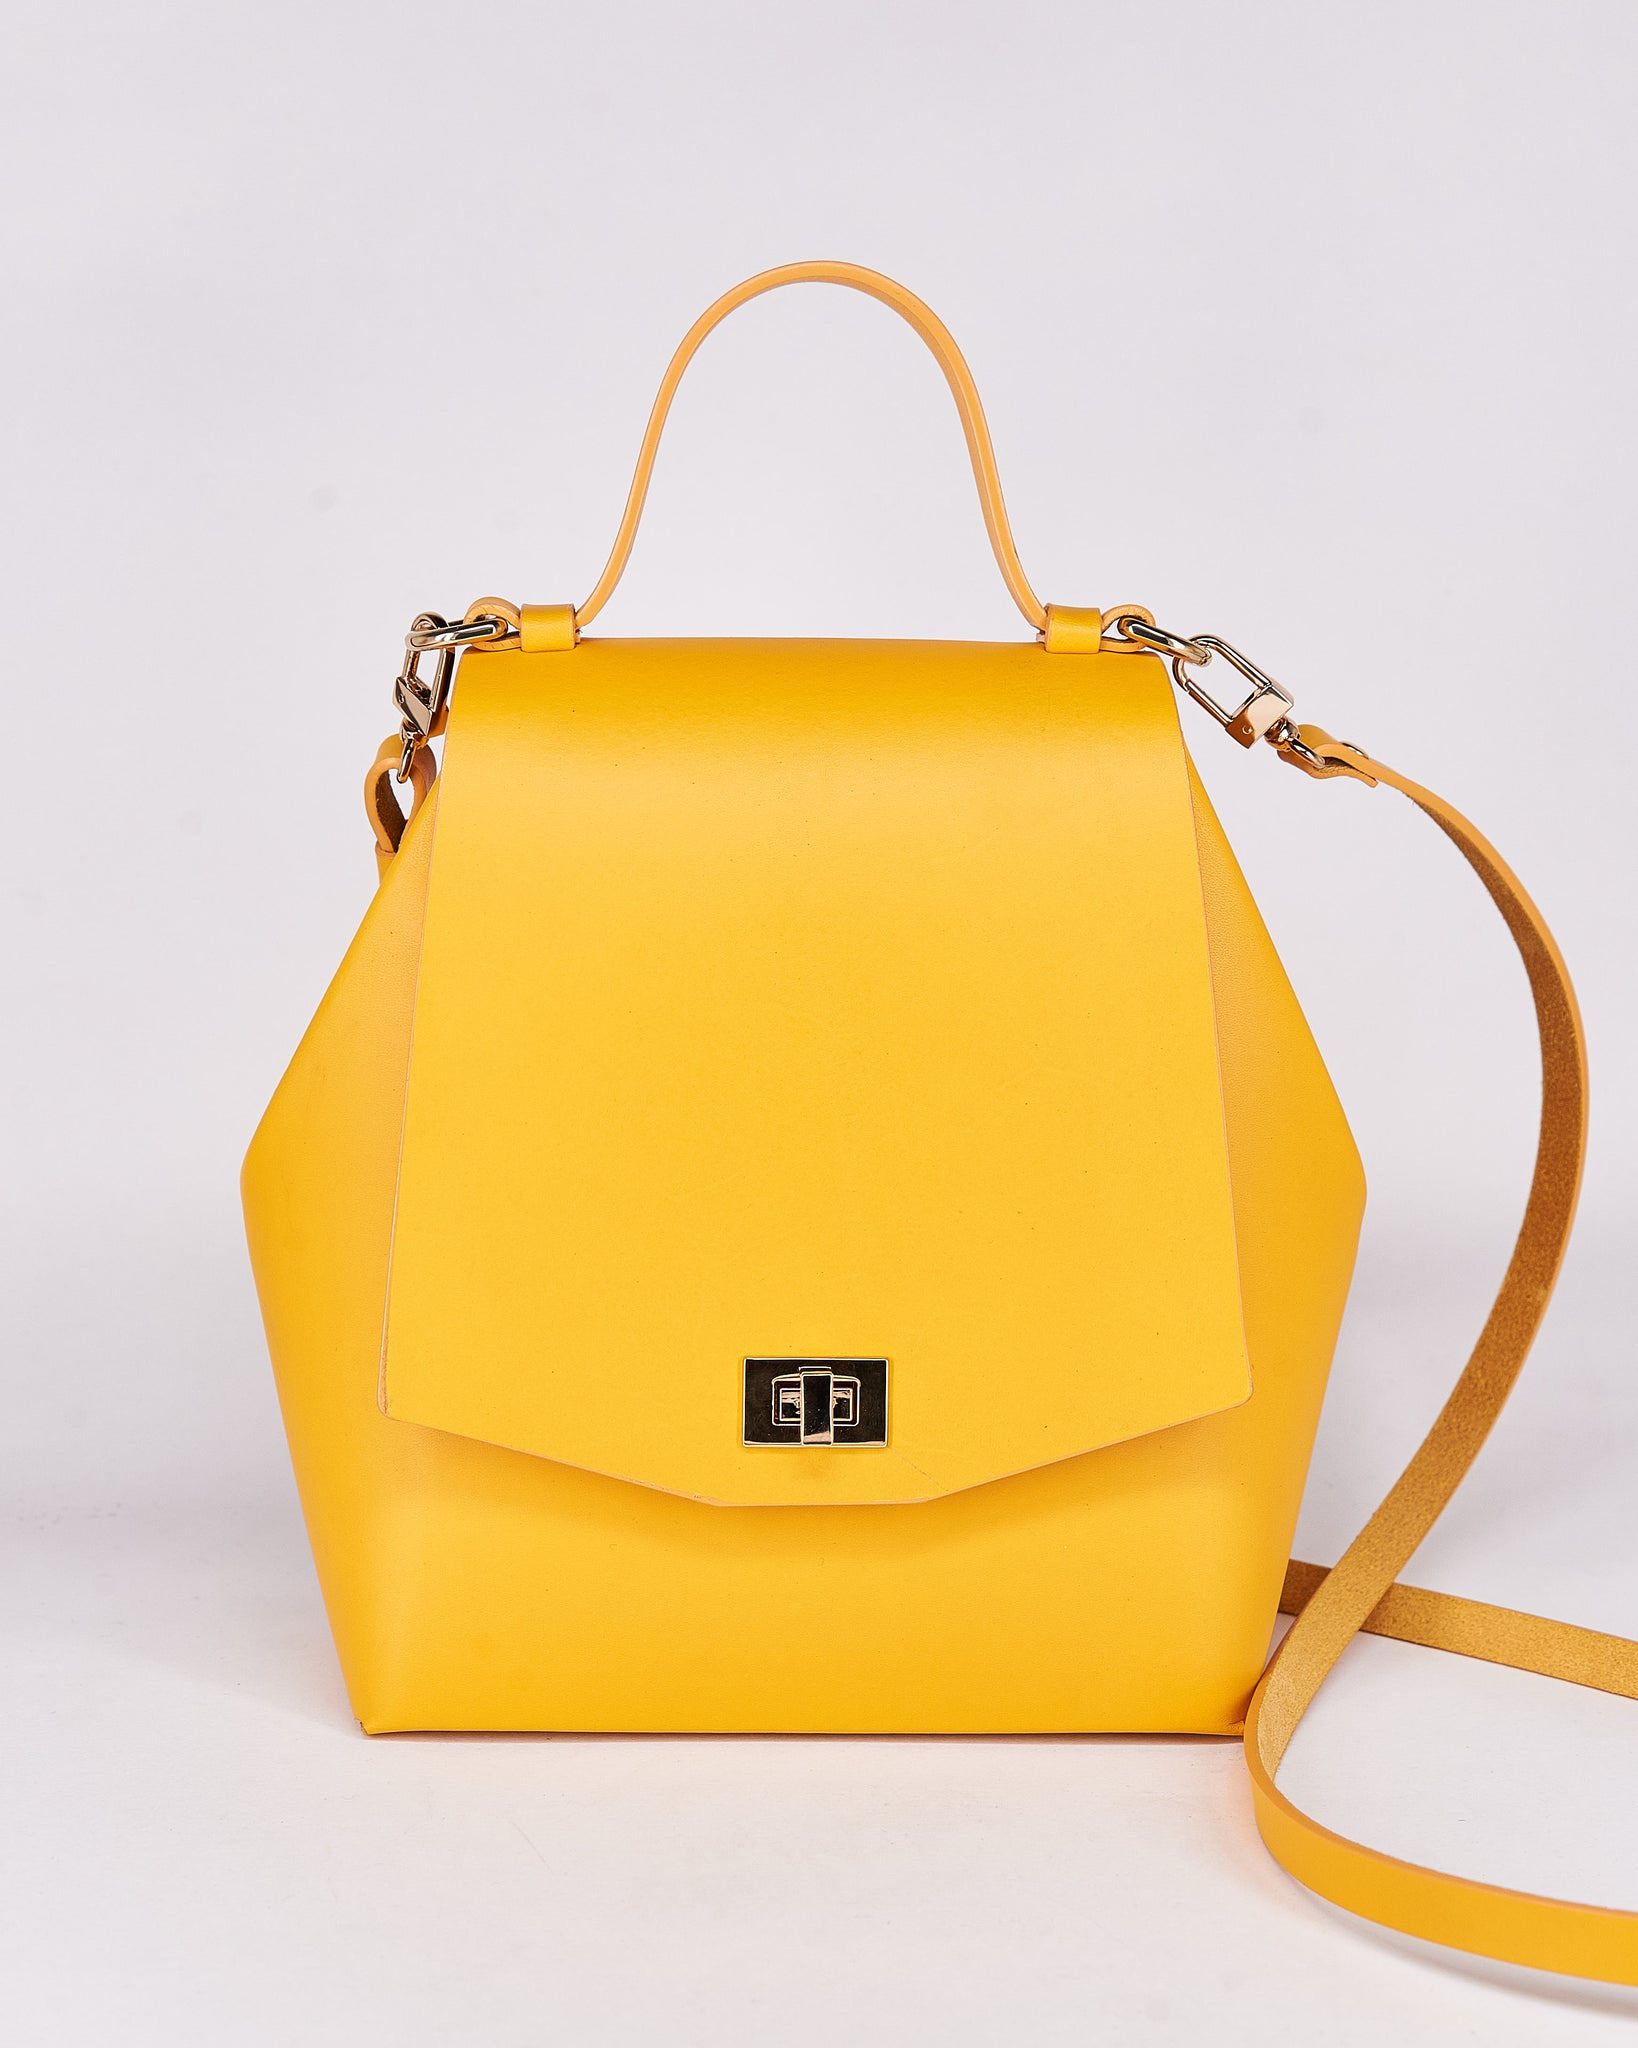 HexBag-Yellow-Leather-DesignedbyNuovum-Localdesigners-Barcelona-FrontStrap